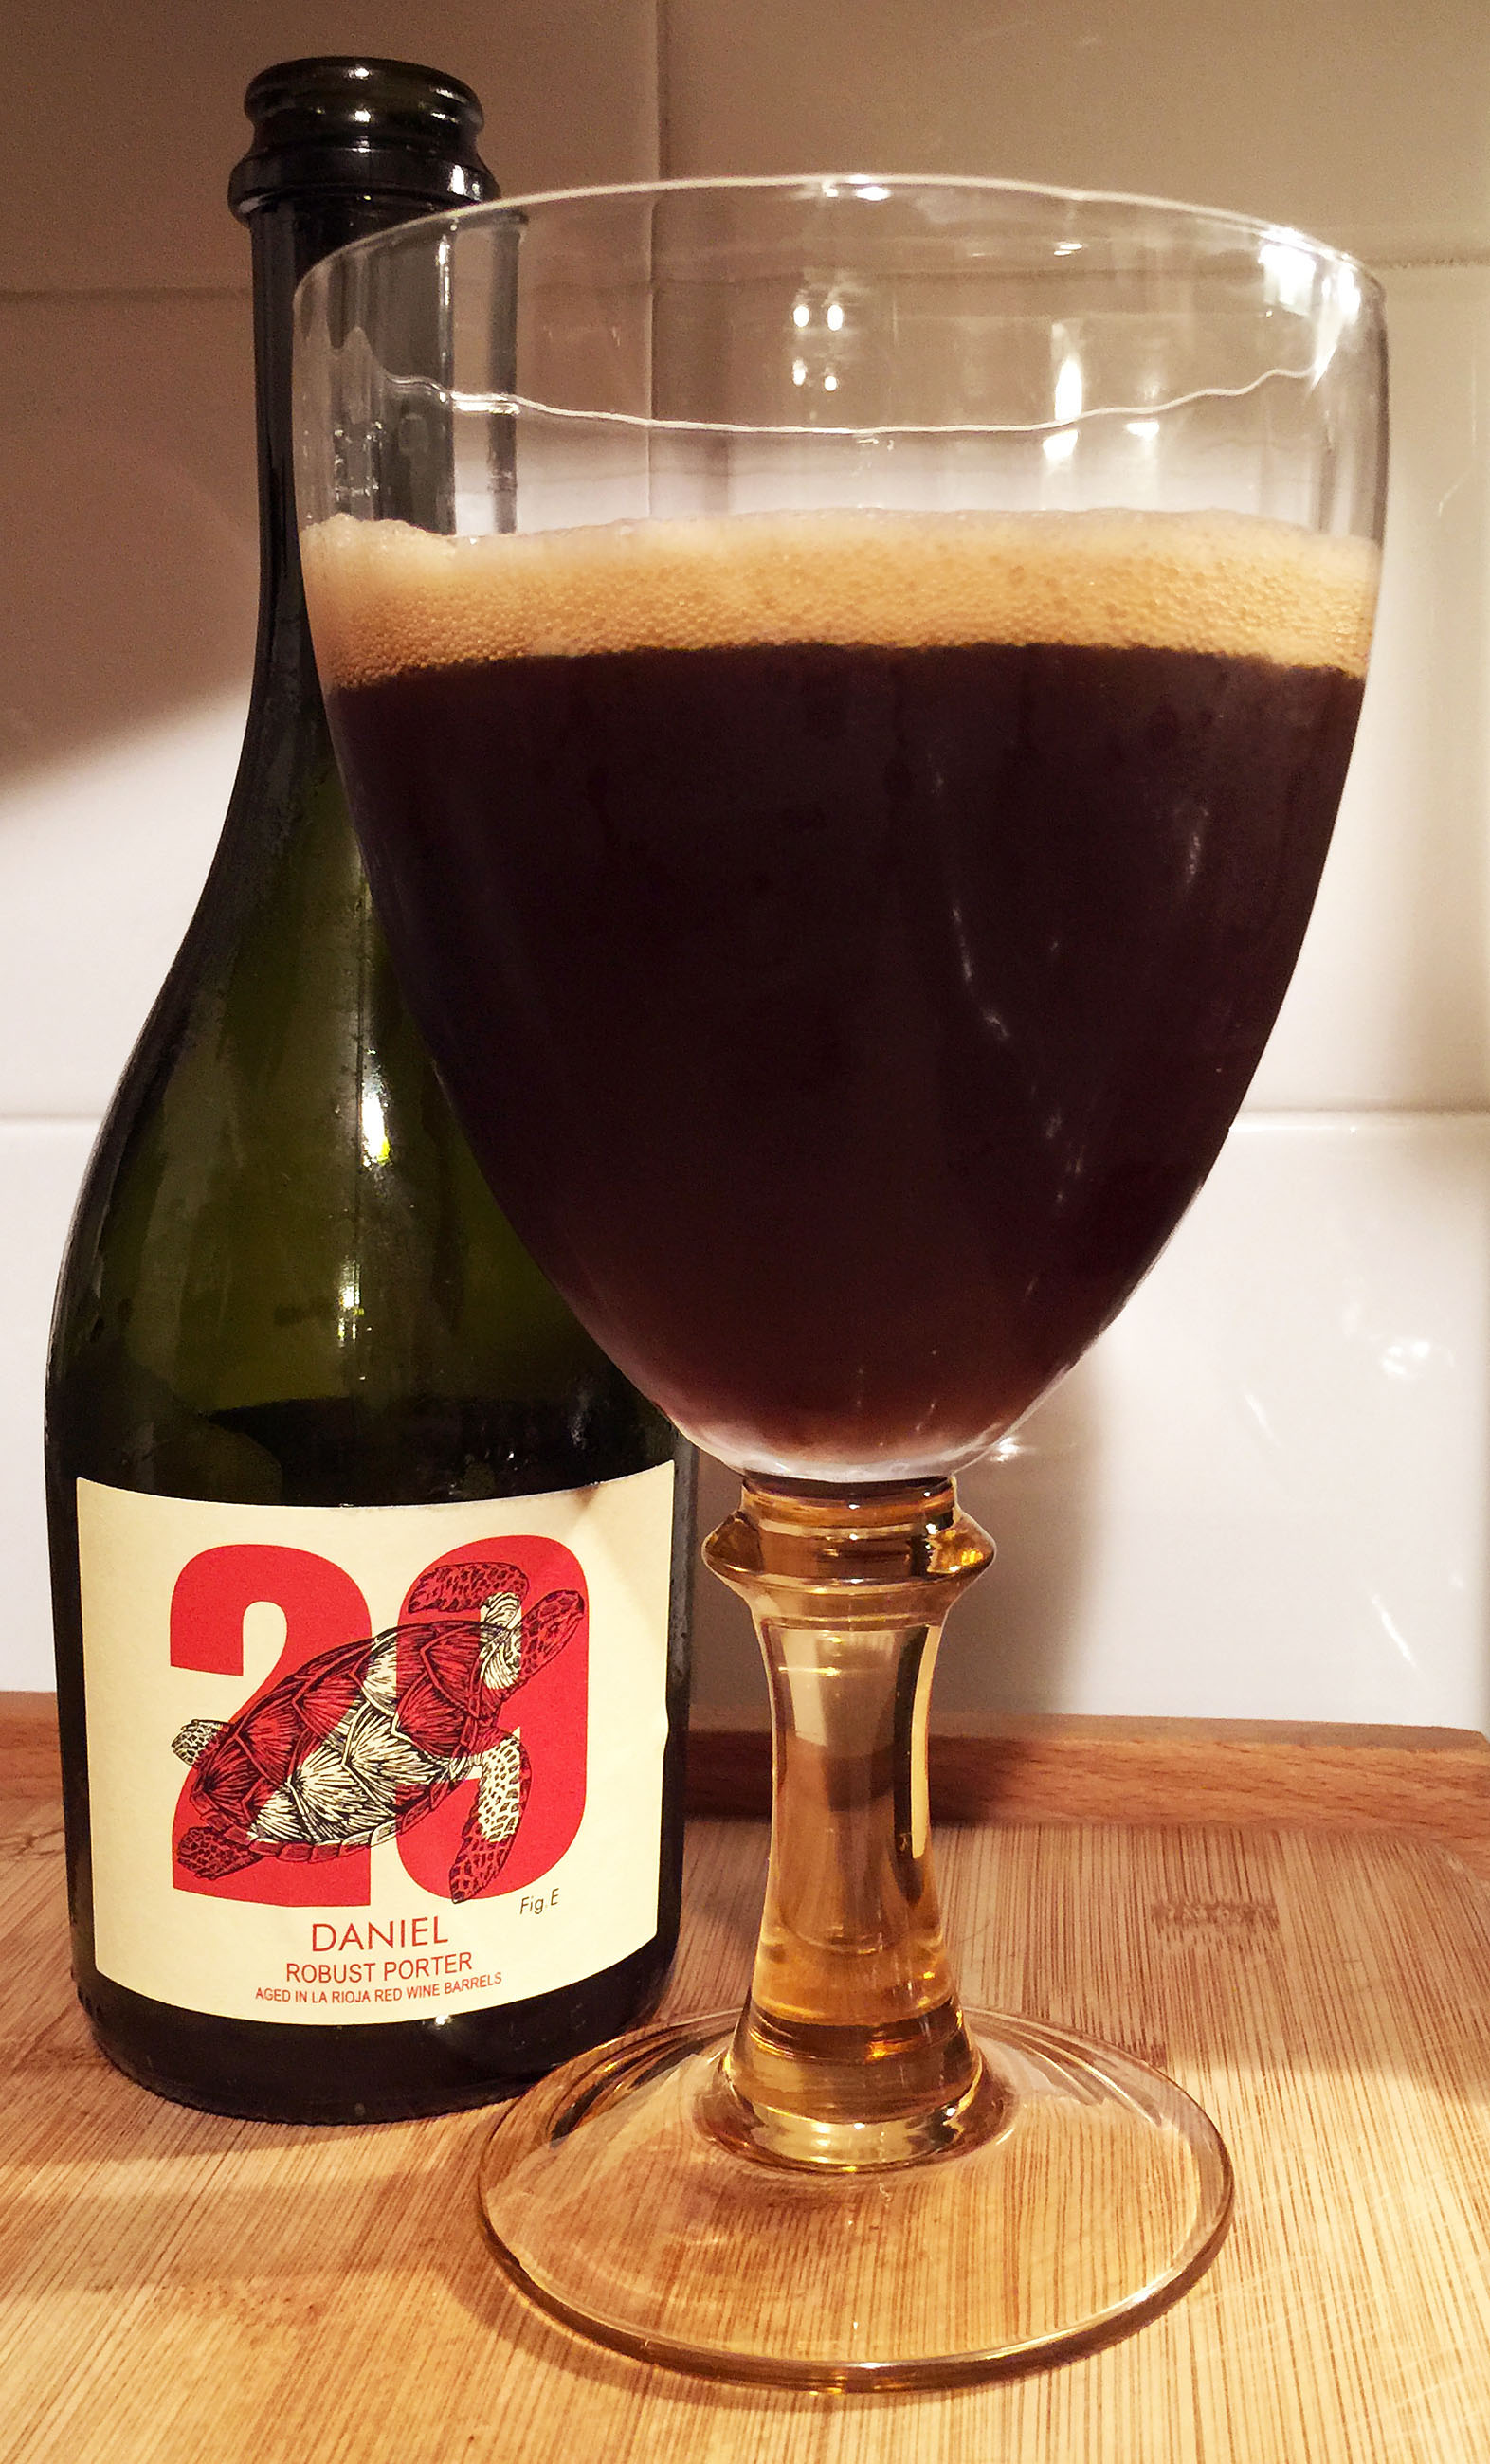 29 Daniel, one of our collaborations with Mateo & Bernabé and friends.